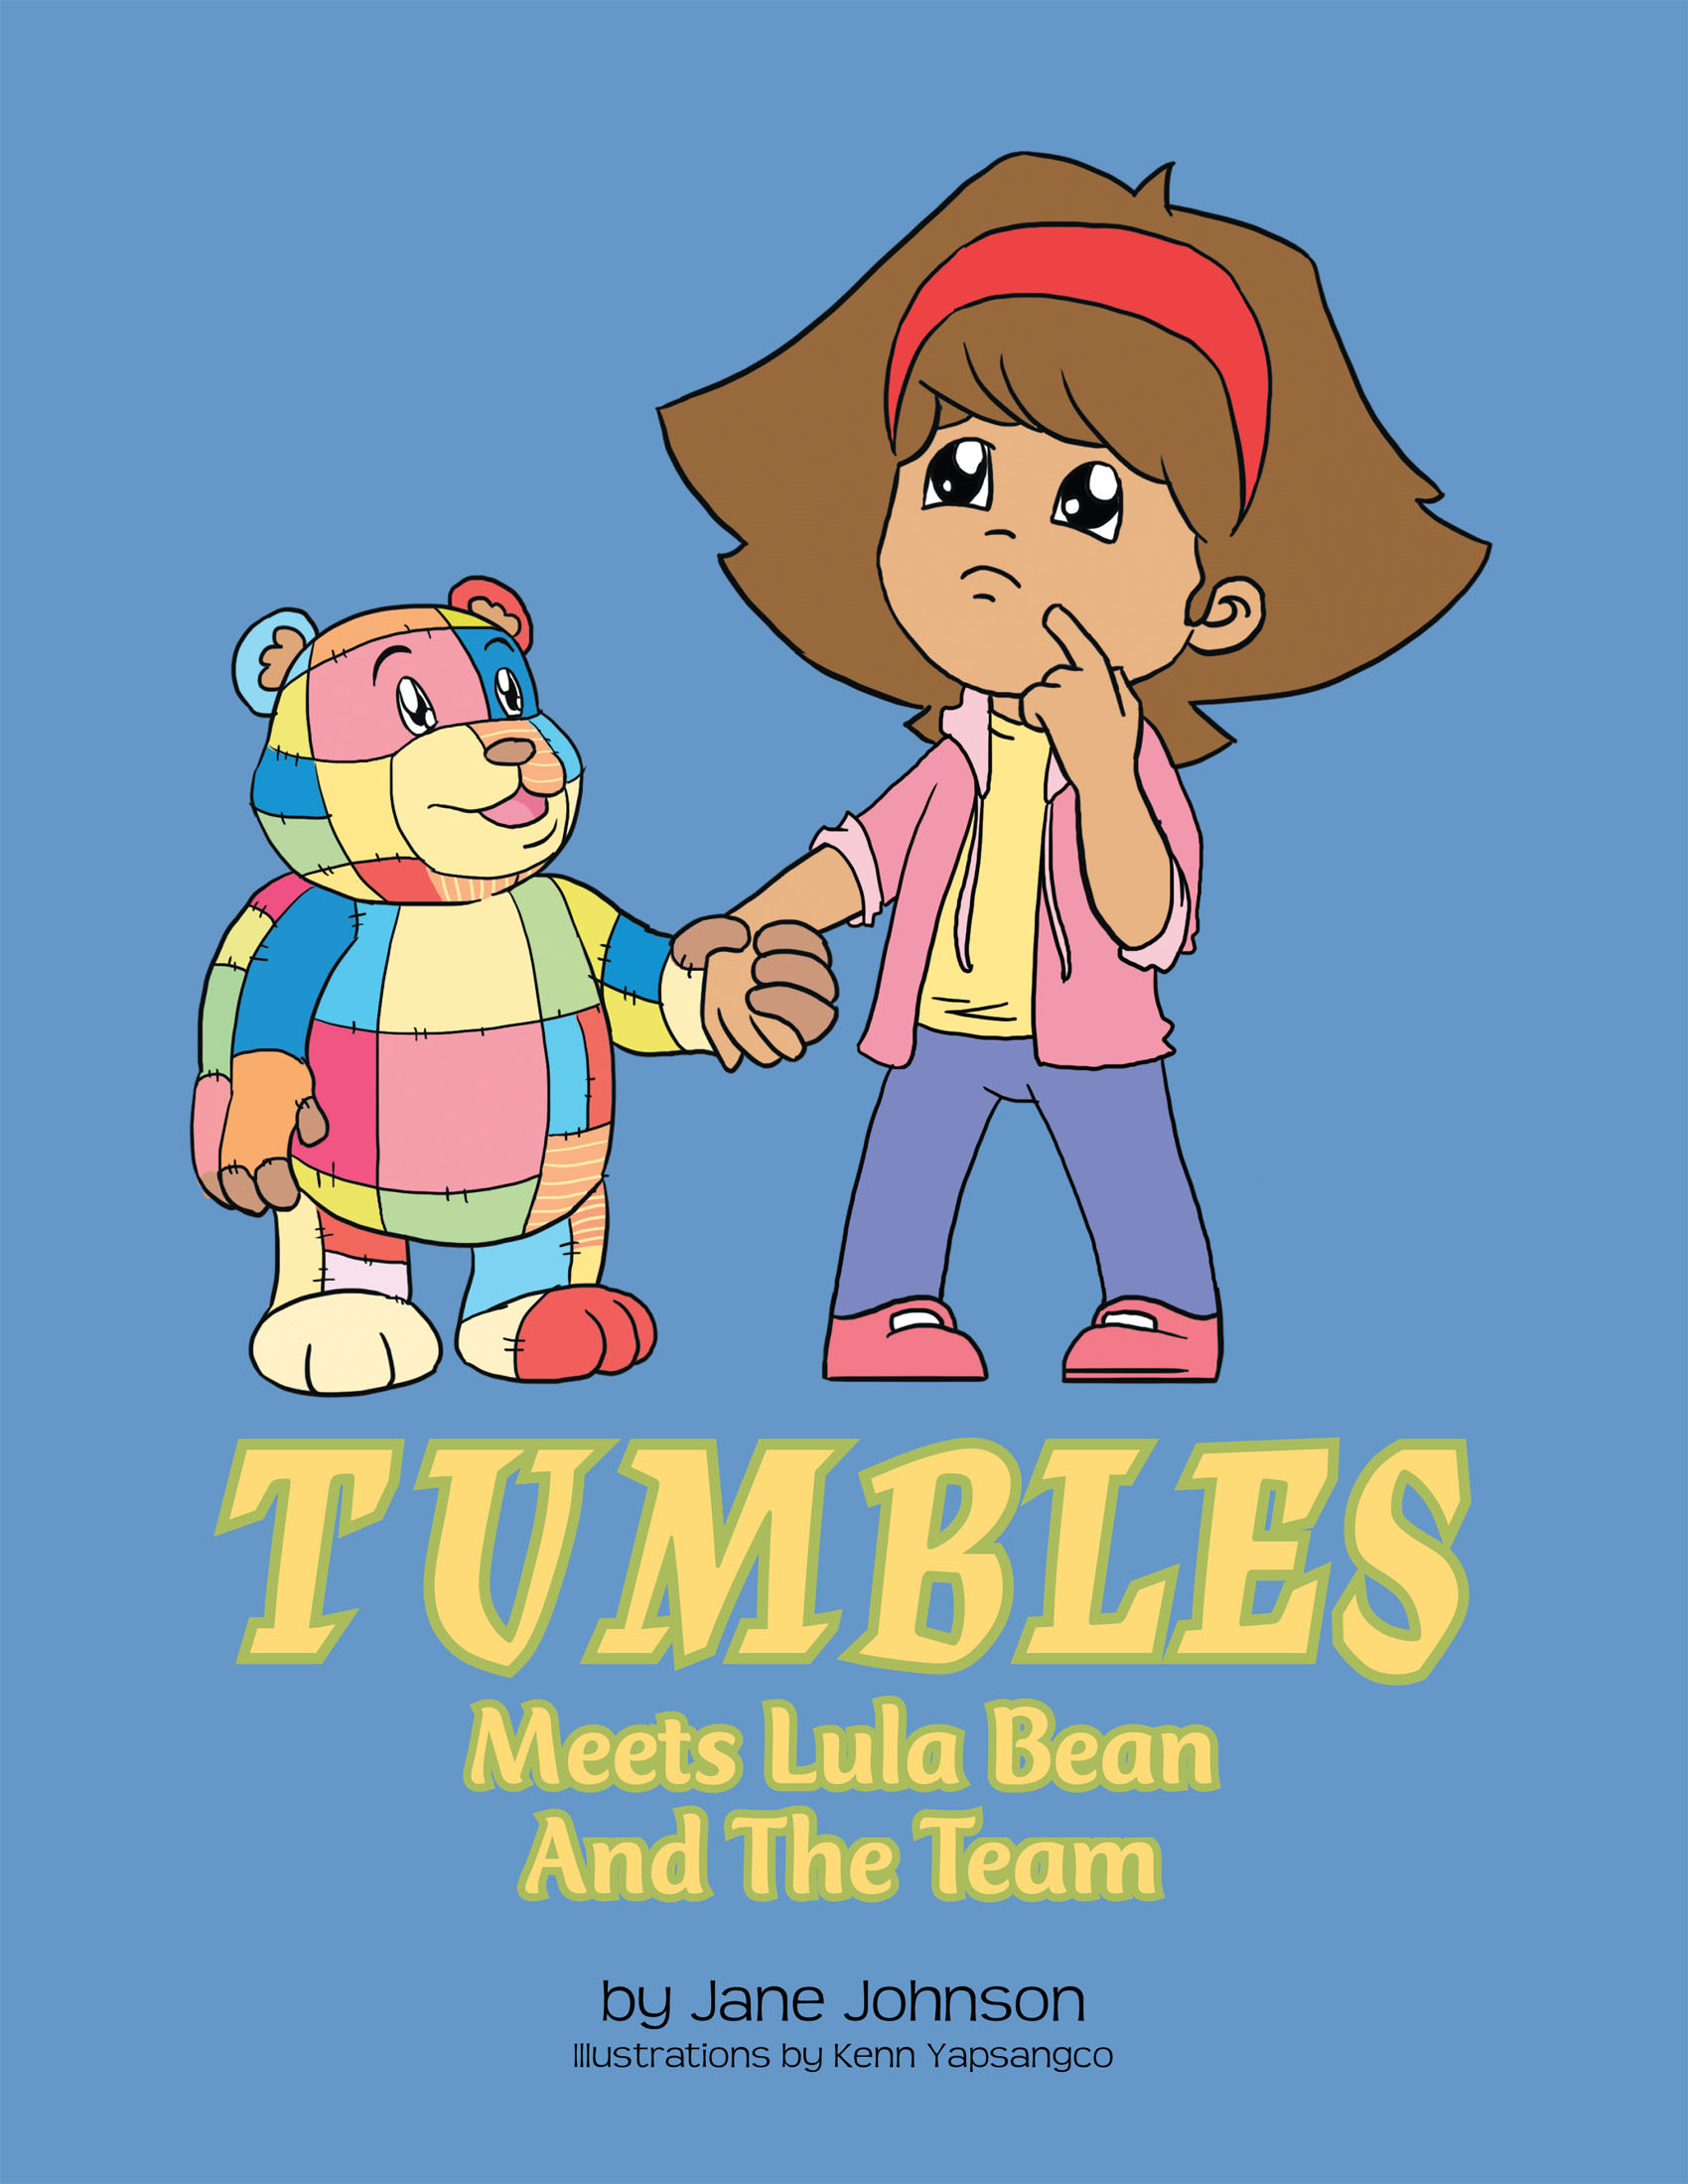 Tumbles Meets Lula Bean And The Team